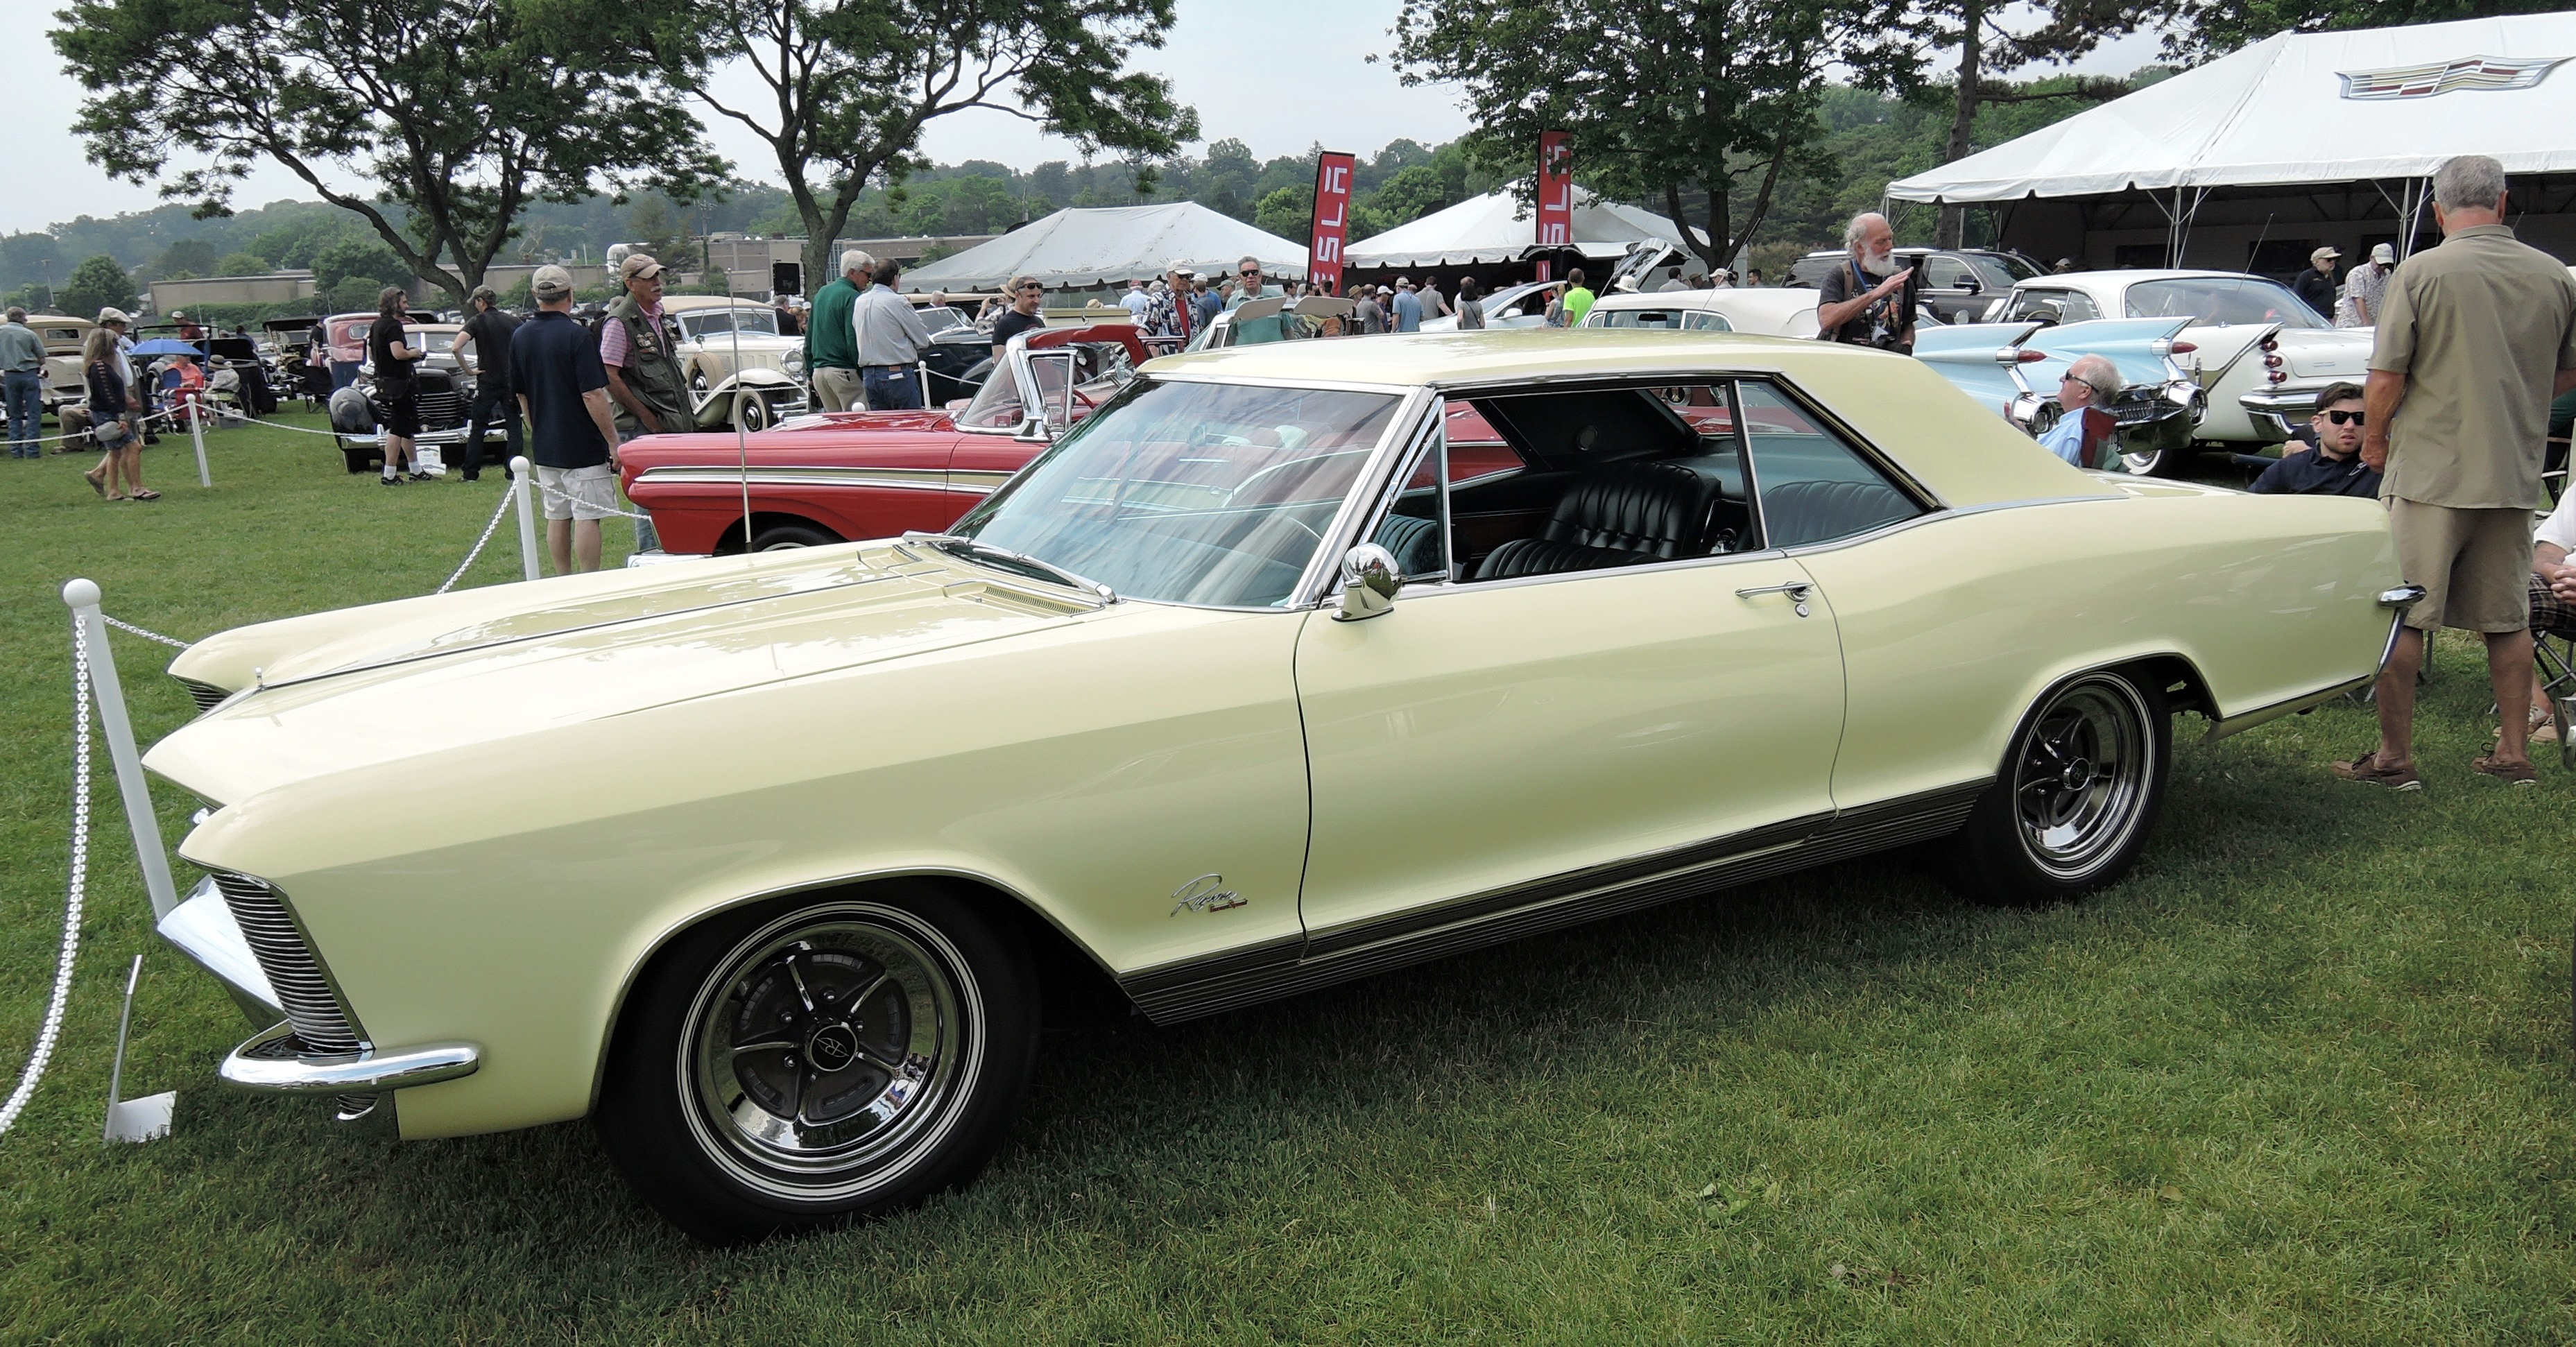 yellow 1965 Buick Riviera Gran Sport - greenwich concours